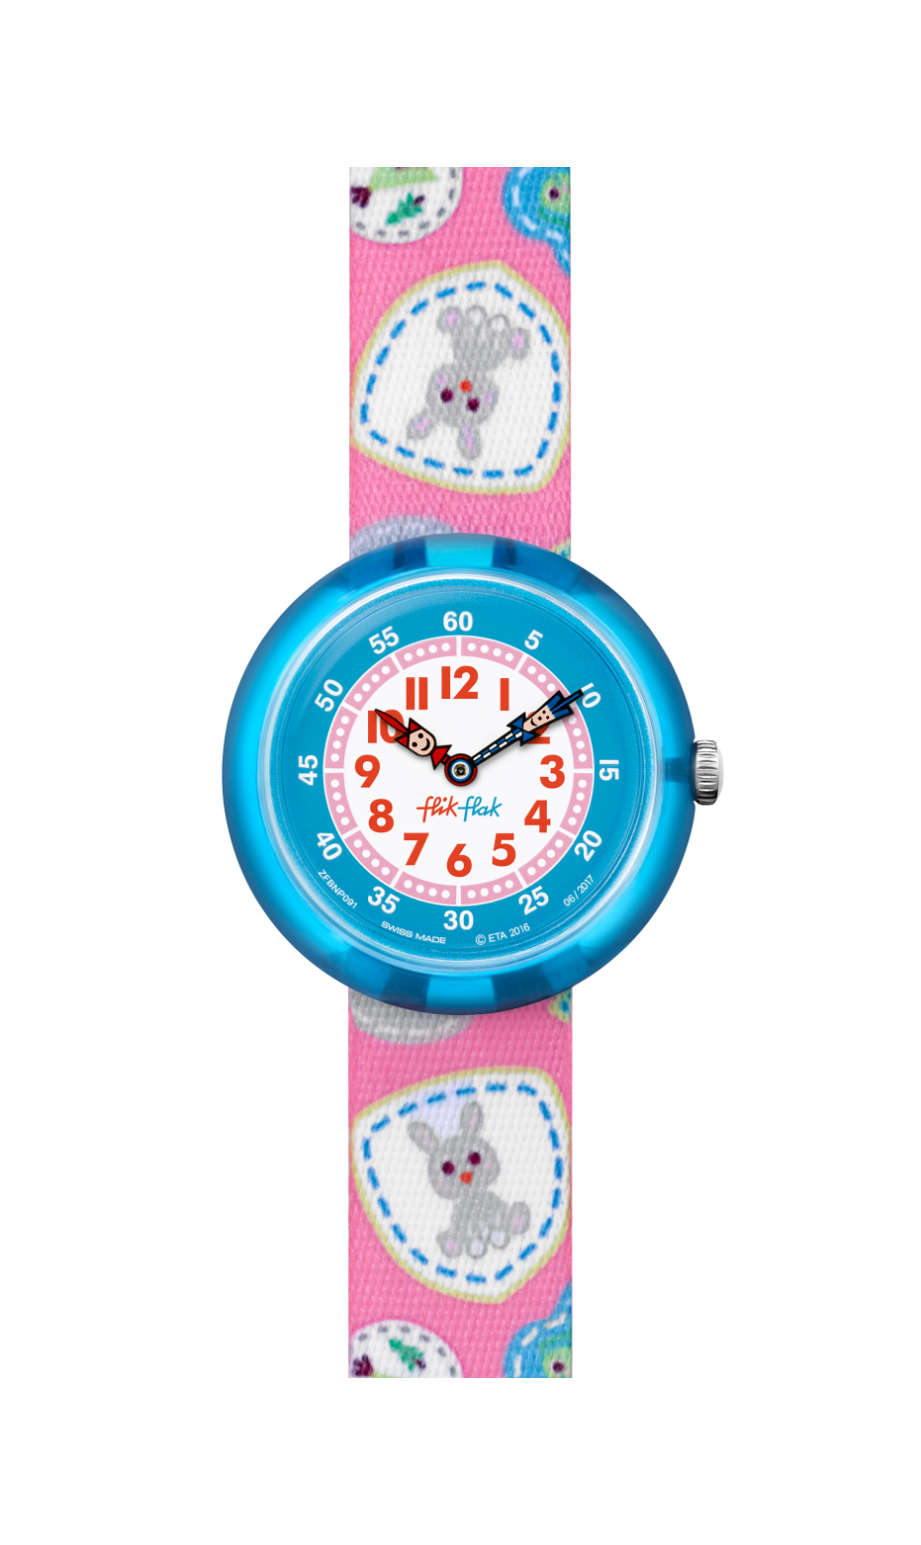 Swatch - CAMPING BADGE PINK - 1